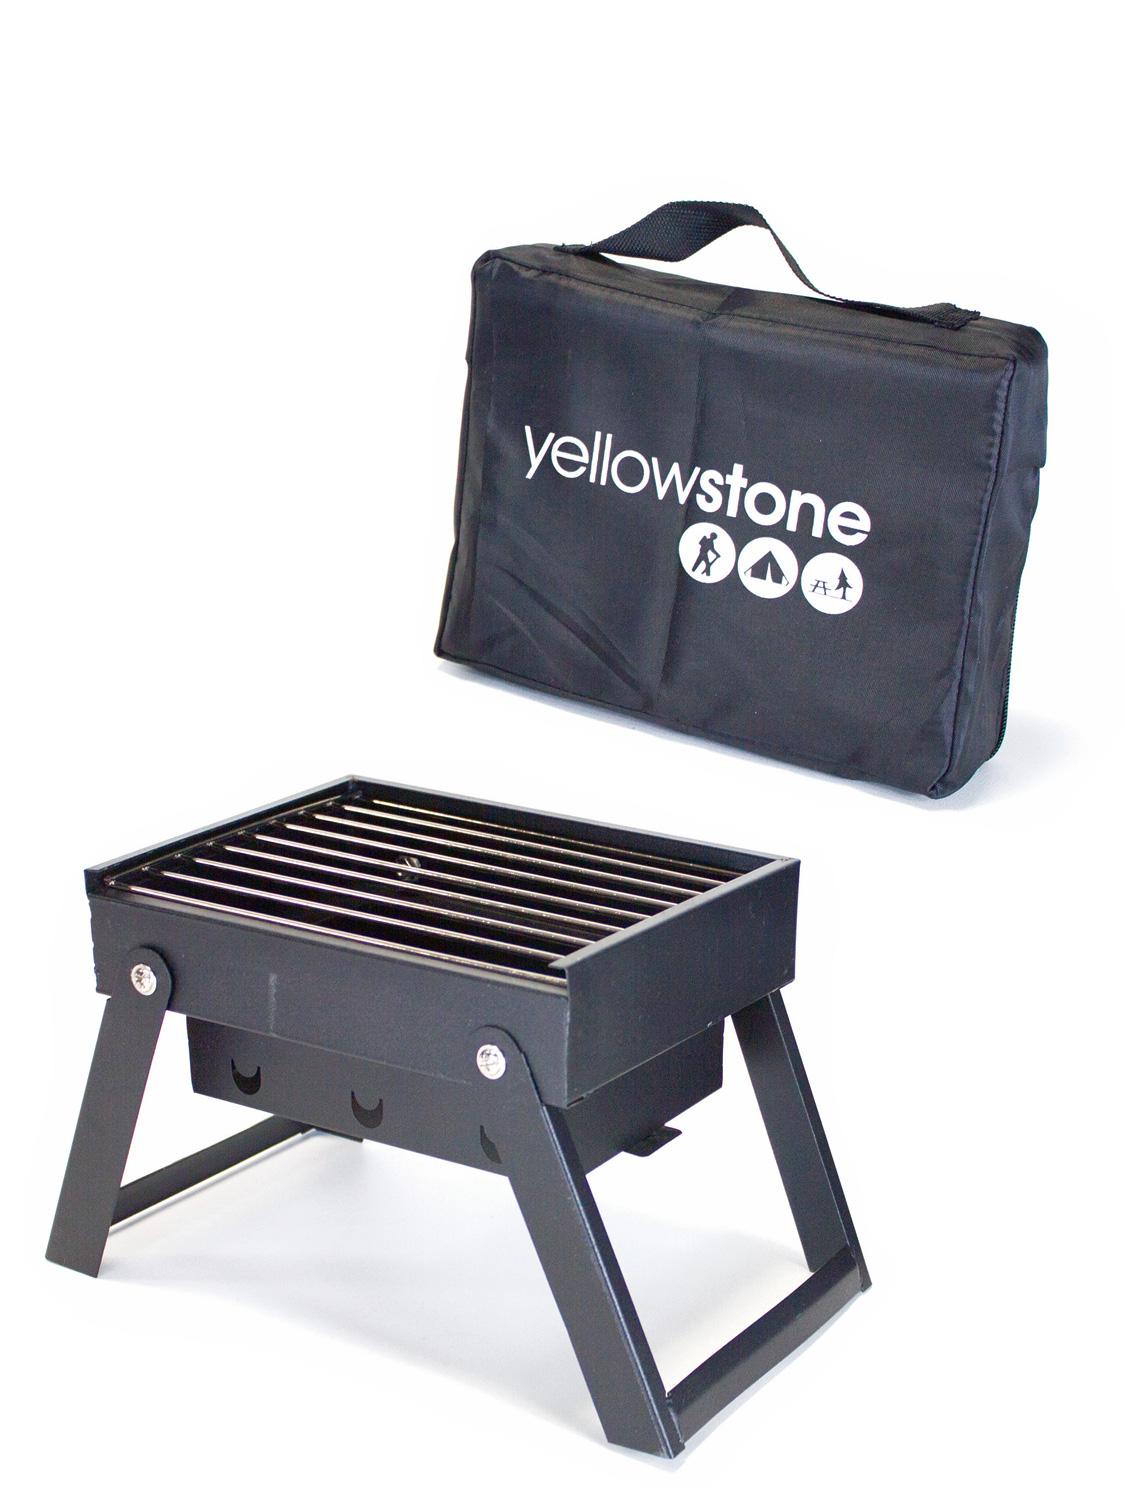 yellowstone mini folding portable bbq barbeque picnic travel camping grill ebay. Black Bedroom Furniture Sets. Home Design Ideas